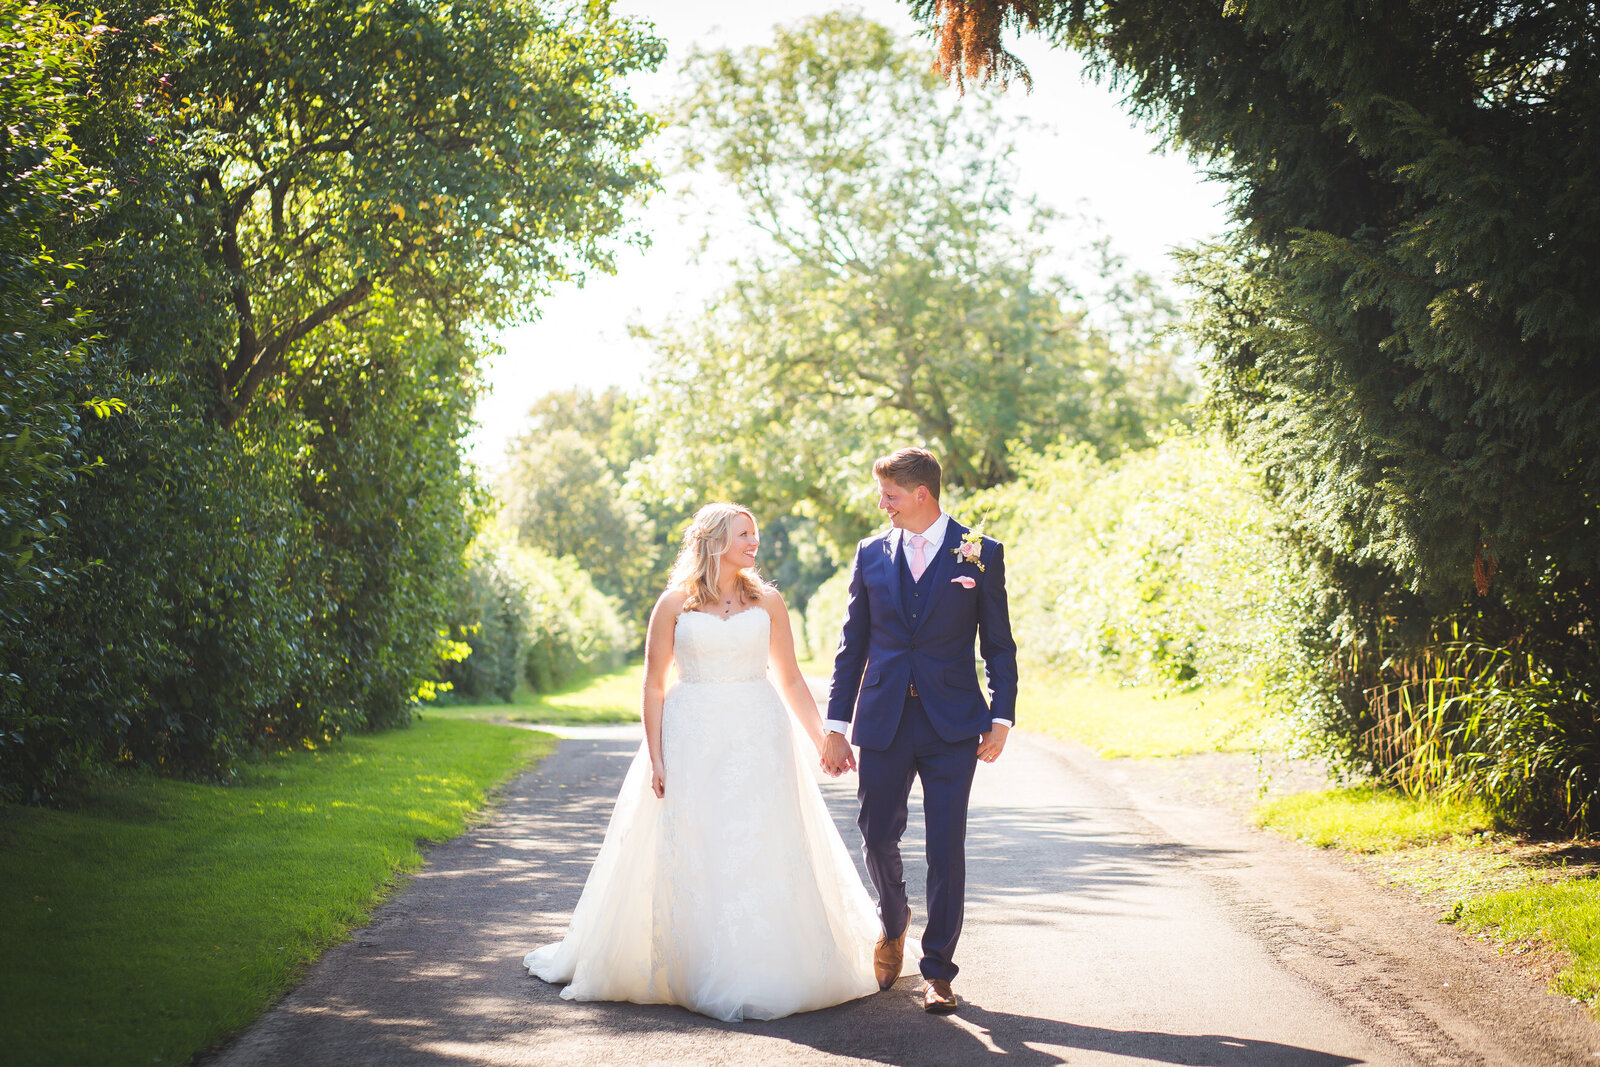 Wedding photography of bride and groom walking down road on their wedding day. Photography by Lynsey Grace Photography